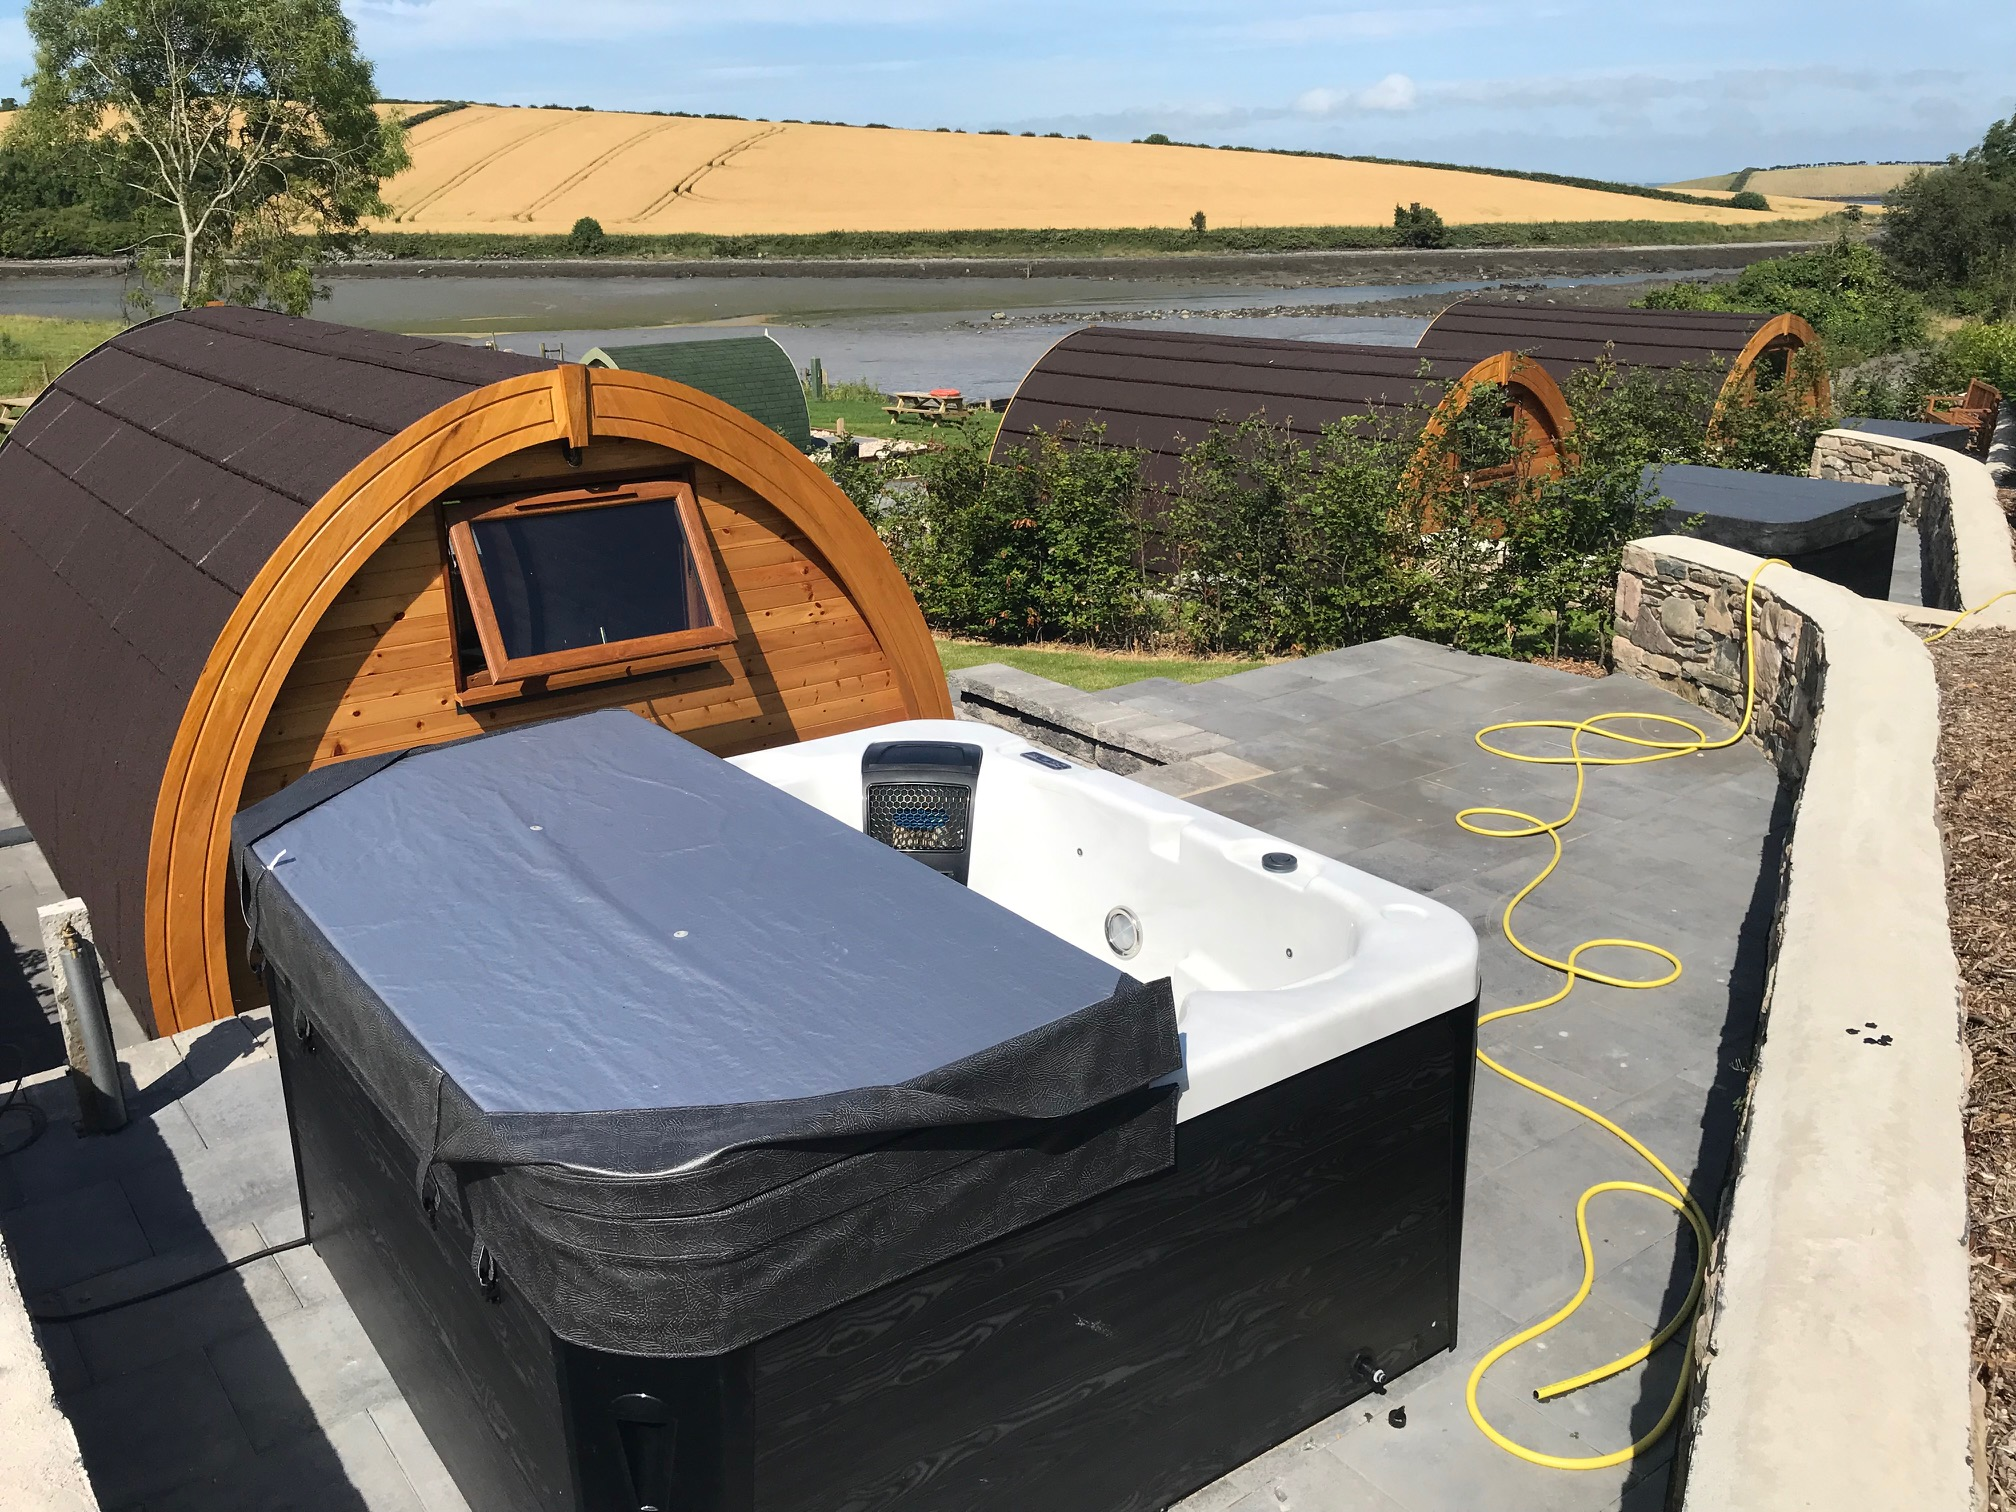 Hot tub and pods view